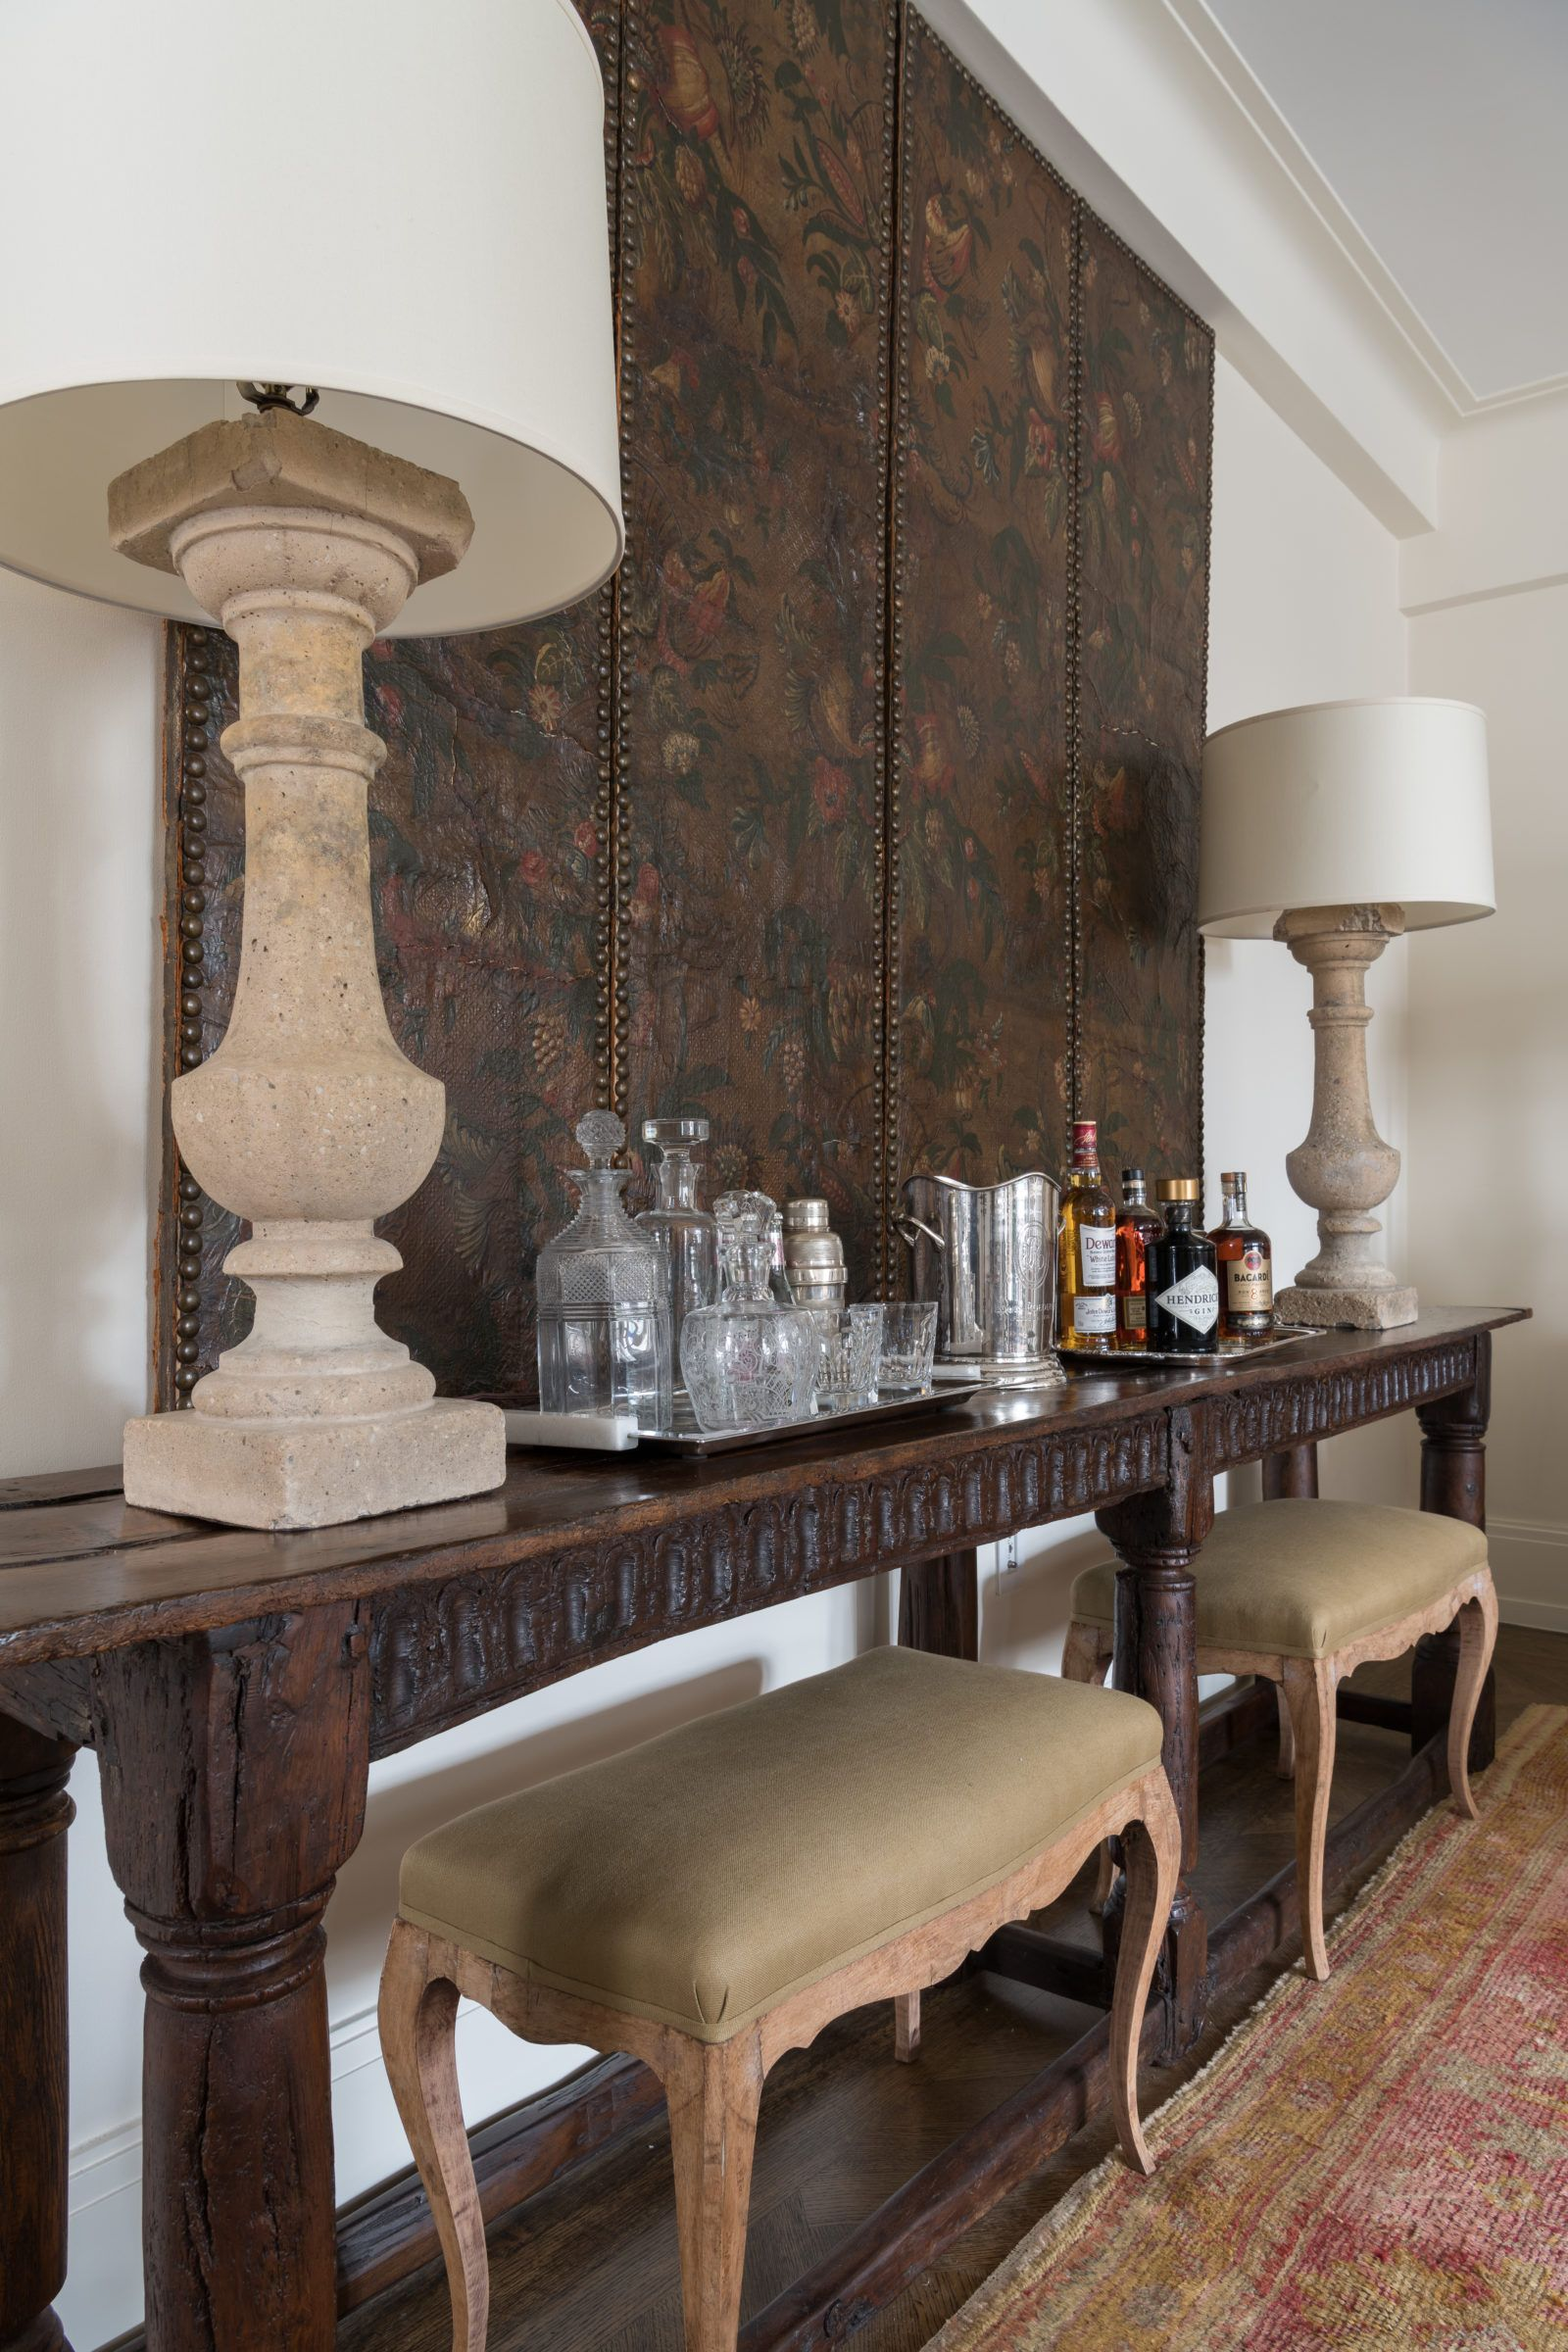 Houston Coupleu0027s Central Park Apartment Transformed Into a Stunner With  Only H-Town Store Buys: Trucking Texas to New York For a Remarkable Six  Week ...